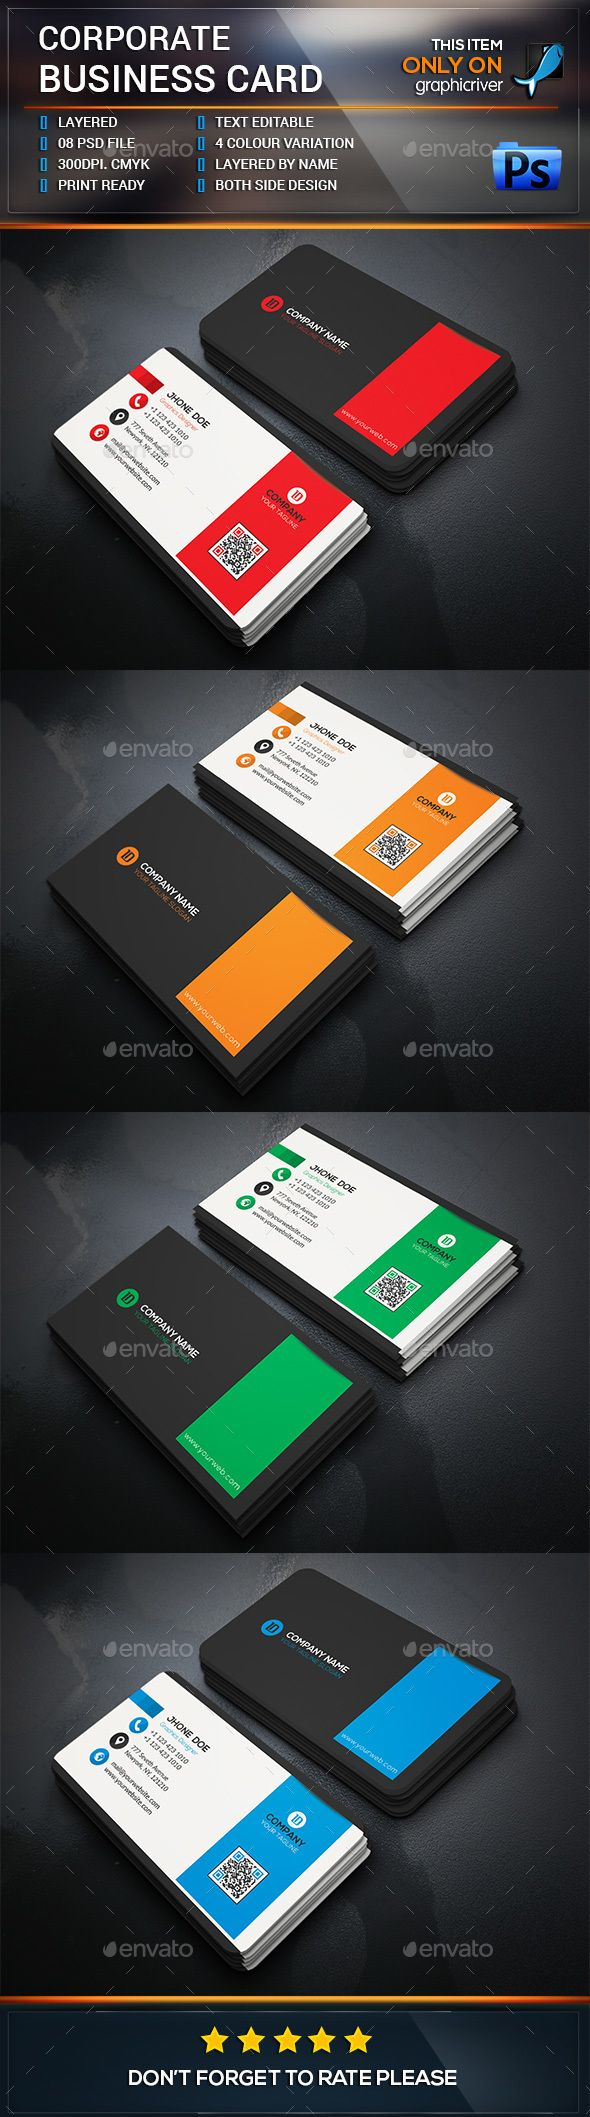 118 Best Business Cards Images On Pinterest Business Card Design